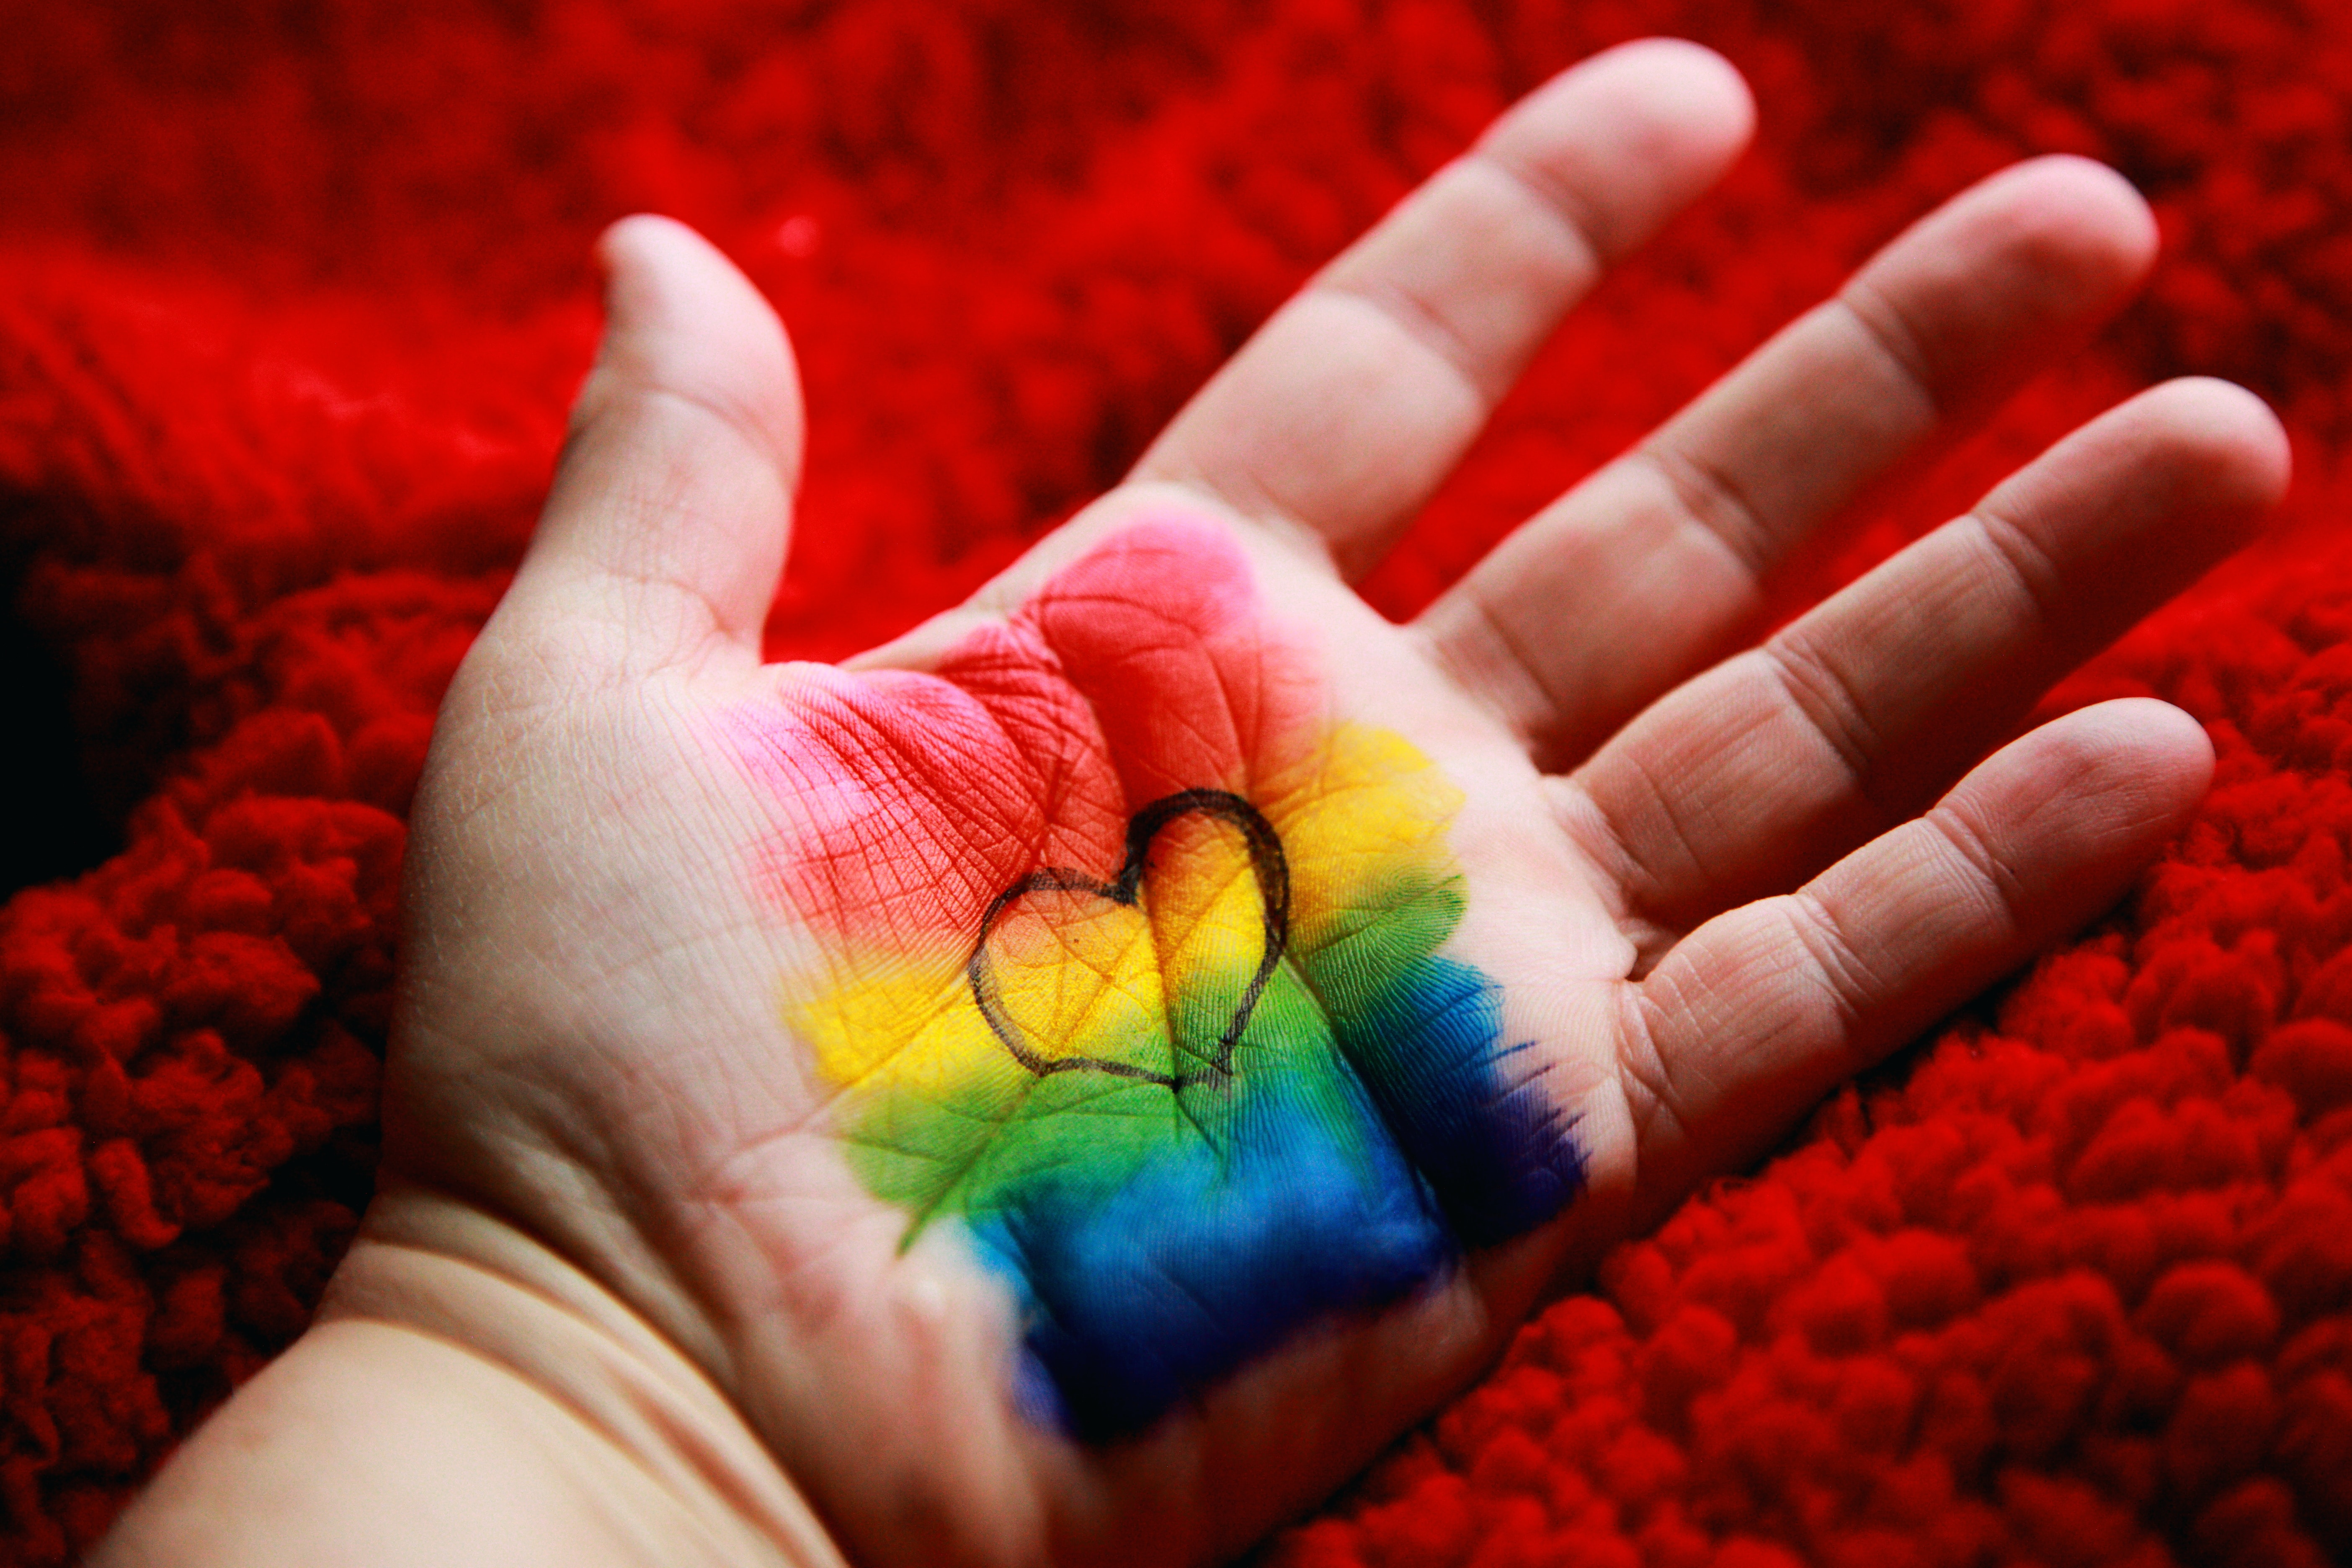 124282 download wallpaper Rainbow, Love, Hand, Multicolored, Motley, Paint, Heart screensavers and pictures for free